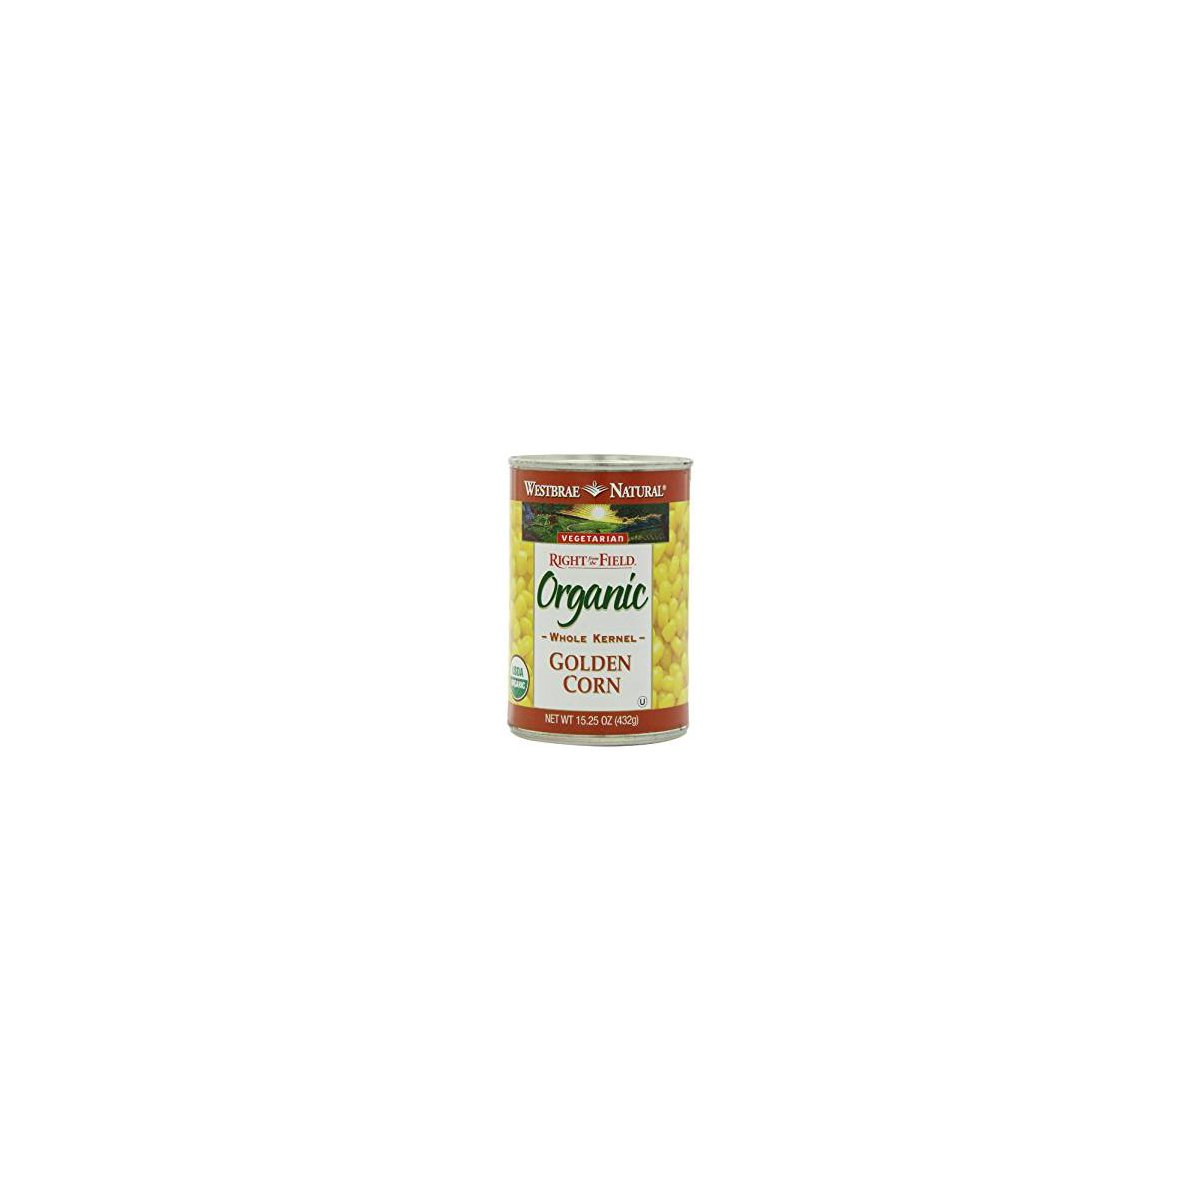 Westbrae Foods, Golden Corn; Made With Organic Ingredients, Pack of 12, Size - 15.25 OZ, Quantity - 1 Case